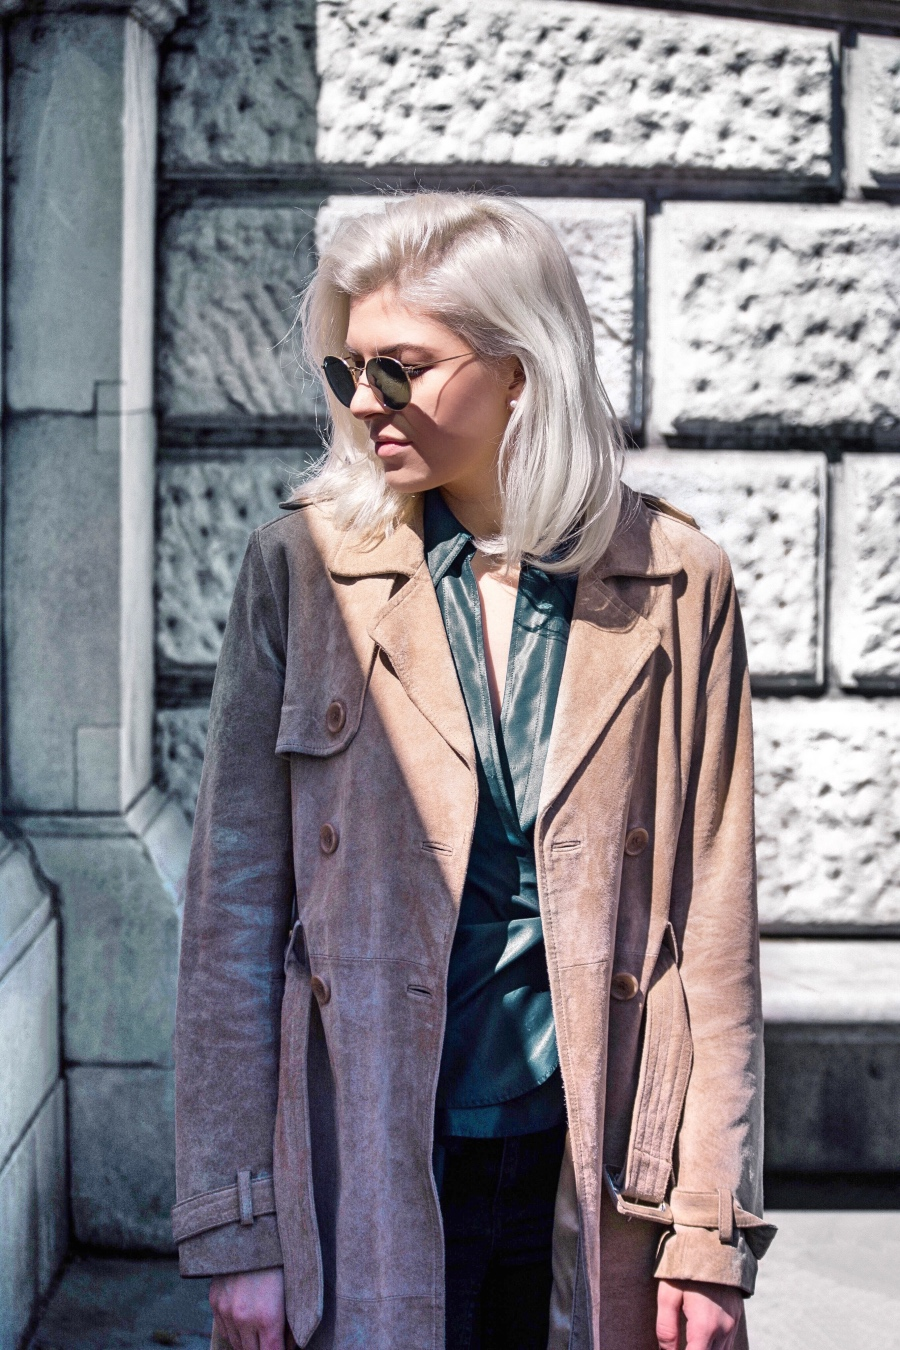 Fashion Outfit, Beige Trenchcoat and Ray-Ban Sunglasses in Vienna